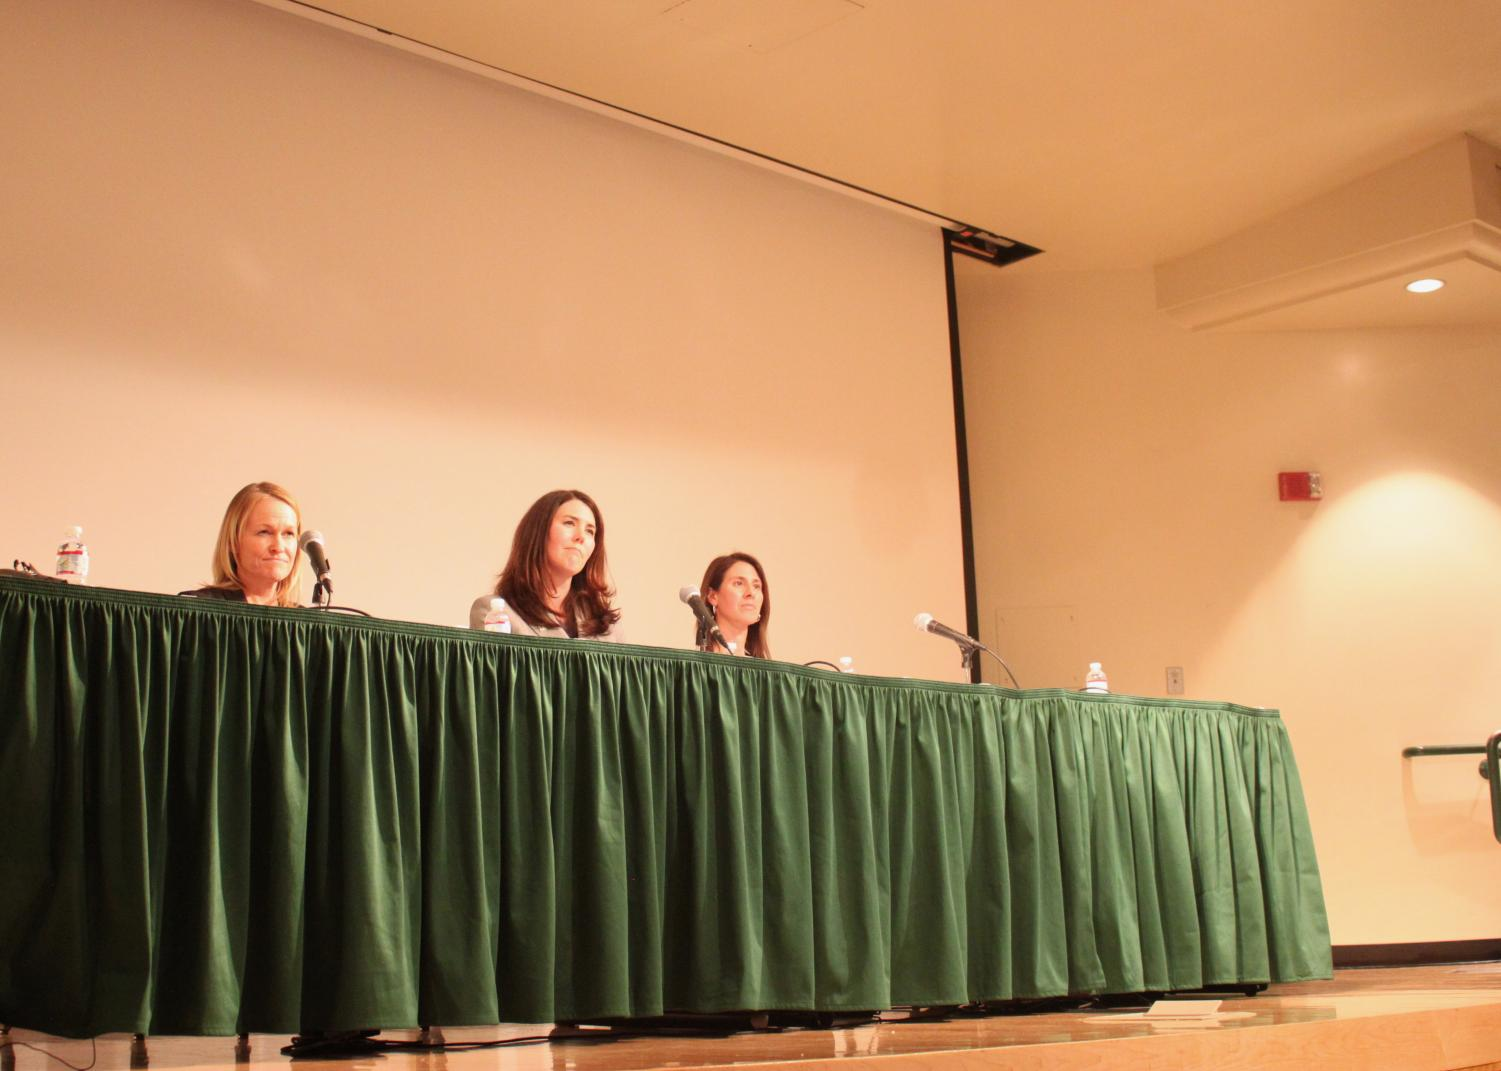 From left: Kristen Tudor, Sarah Kirby-Gonzalez and Rebecca Kluchin speak at the